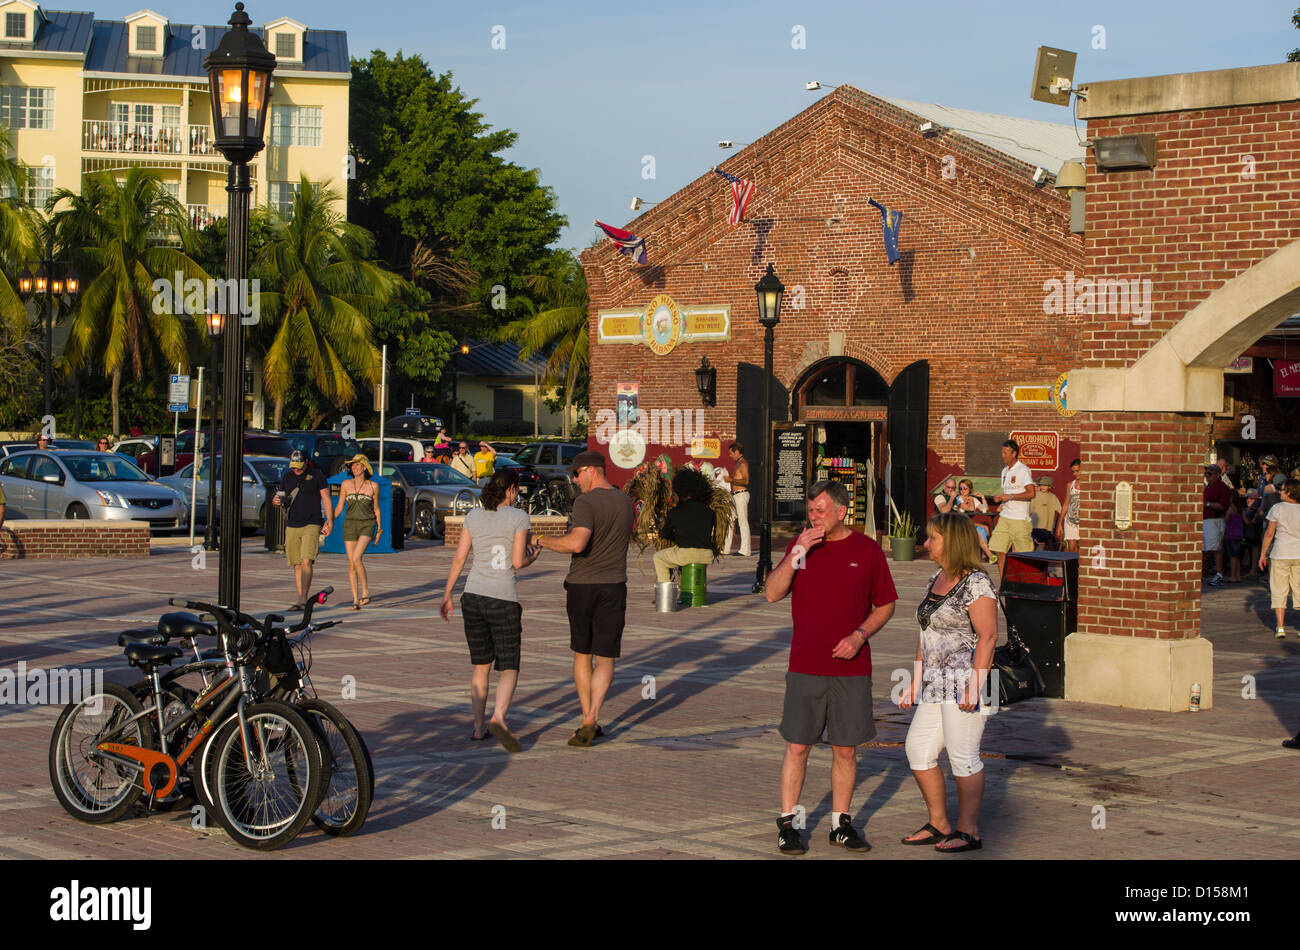 USA, Florida, Key West. Visitors in Mallory Square. - Stock Image